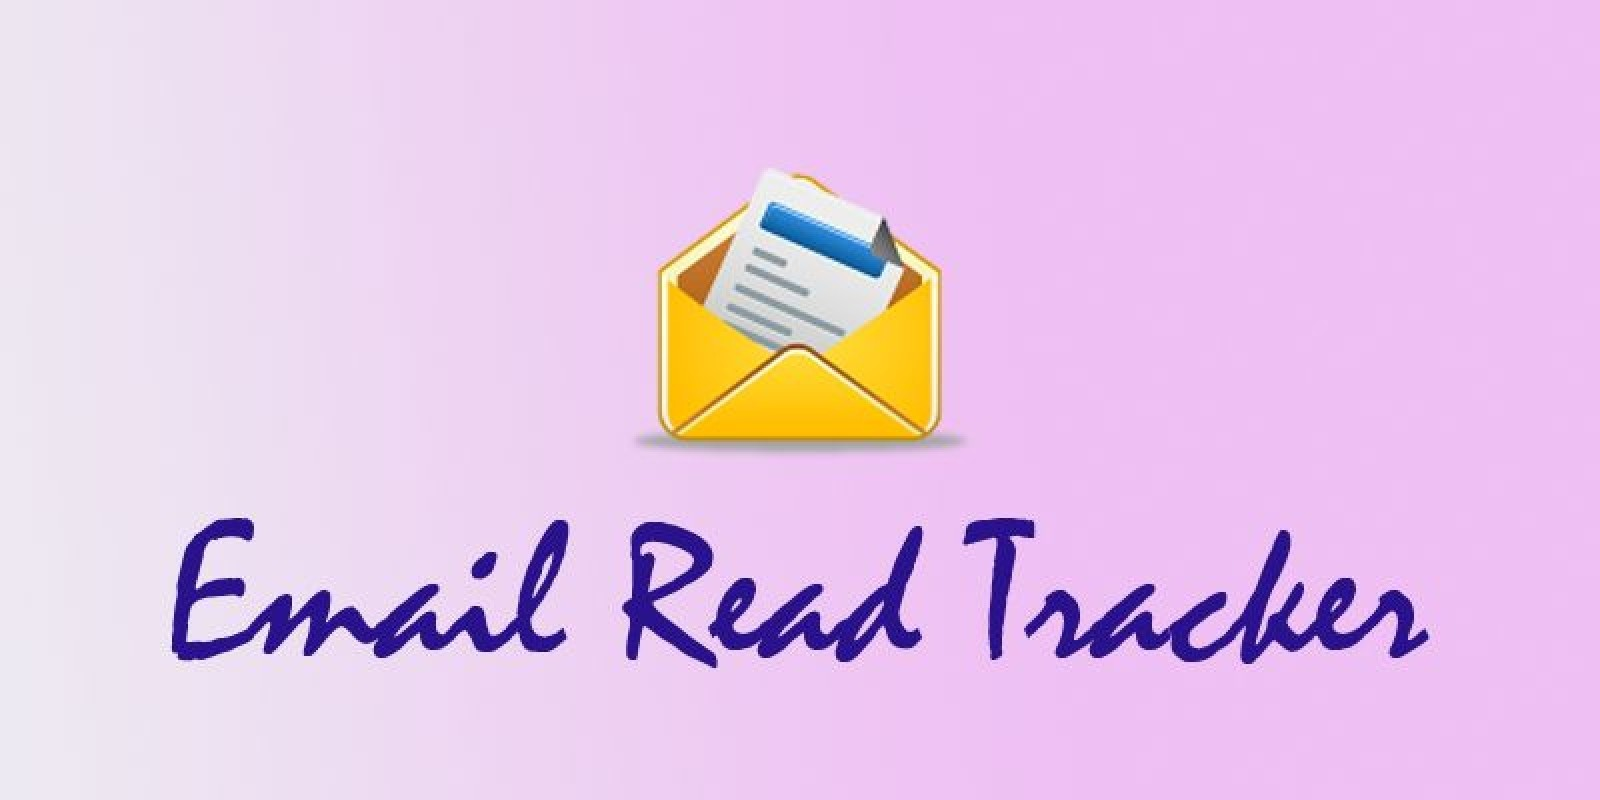 Email Read Tracker - WordPress Plugin